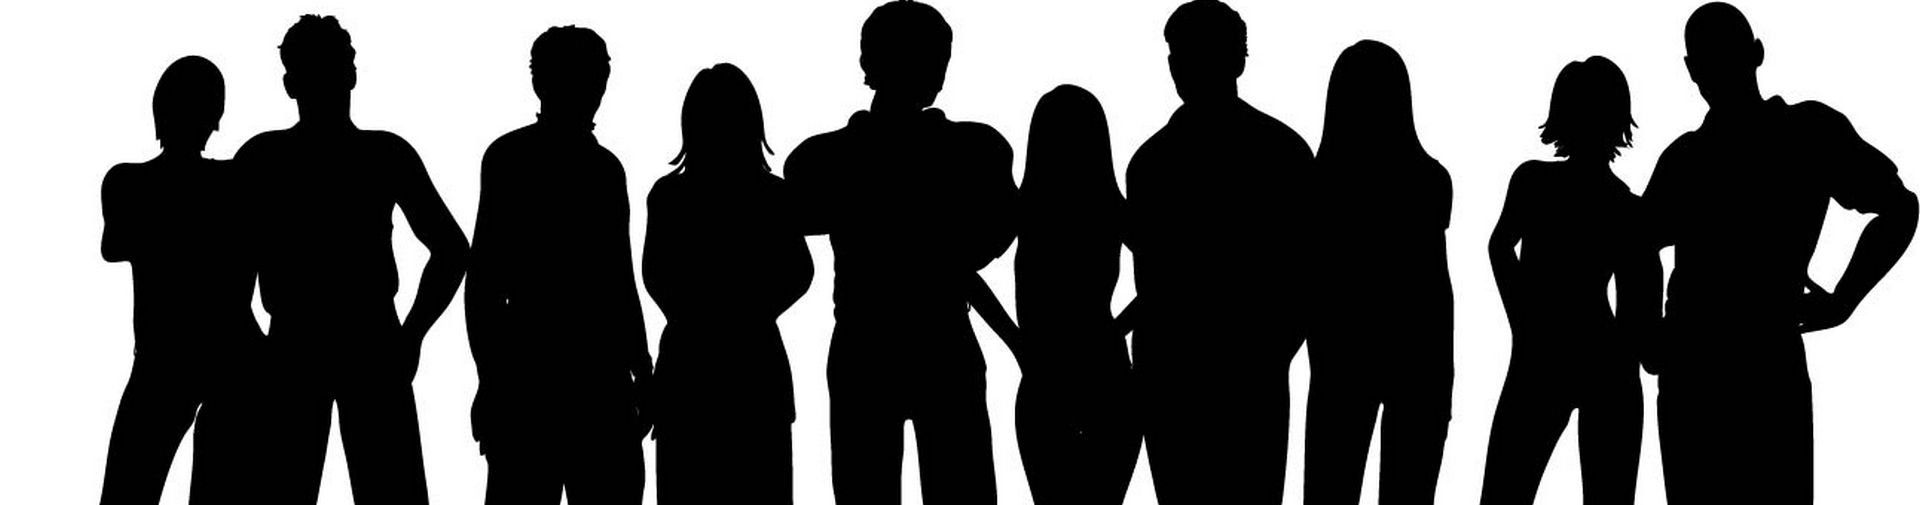 1920x505 Crowd Silhouette Transparent 1592655